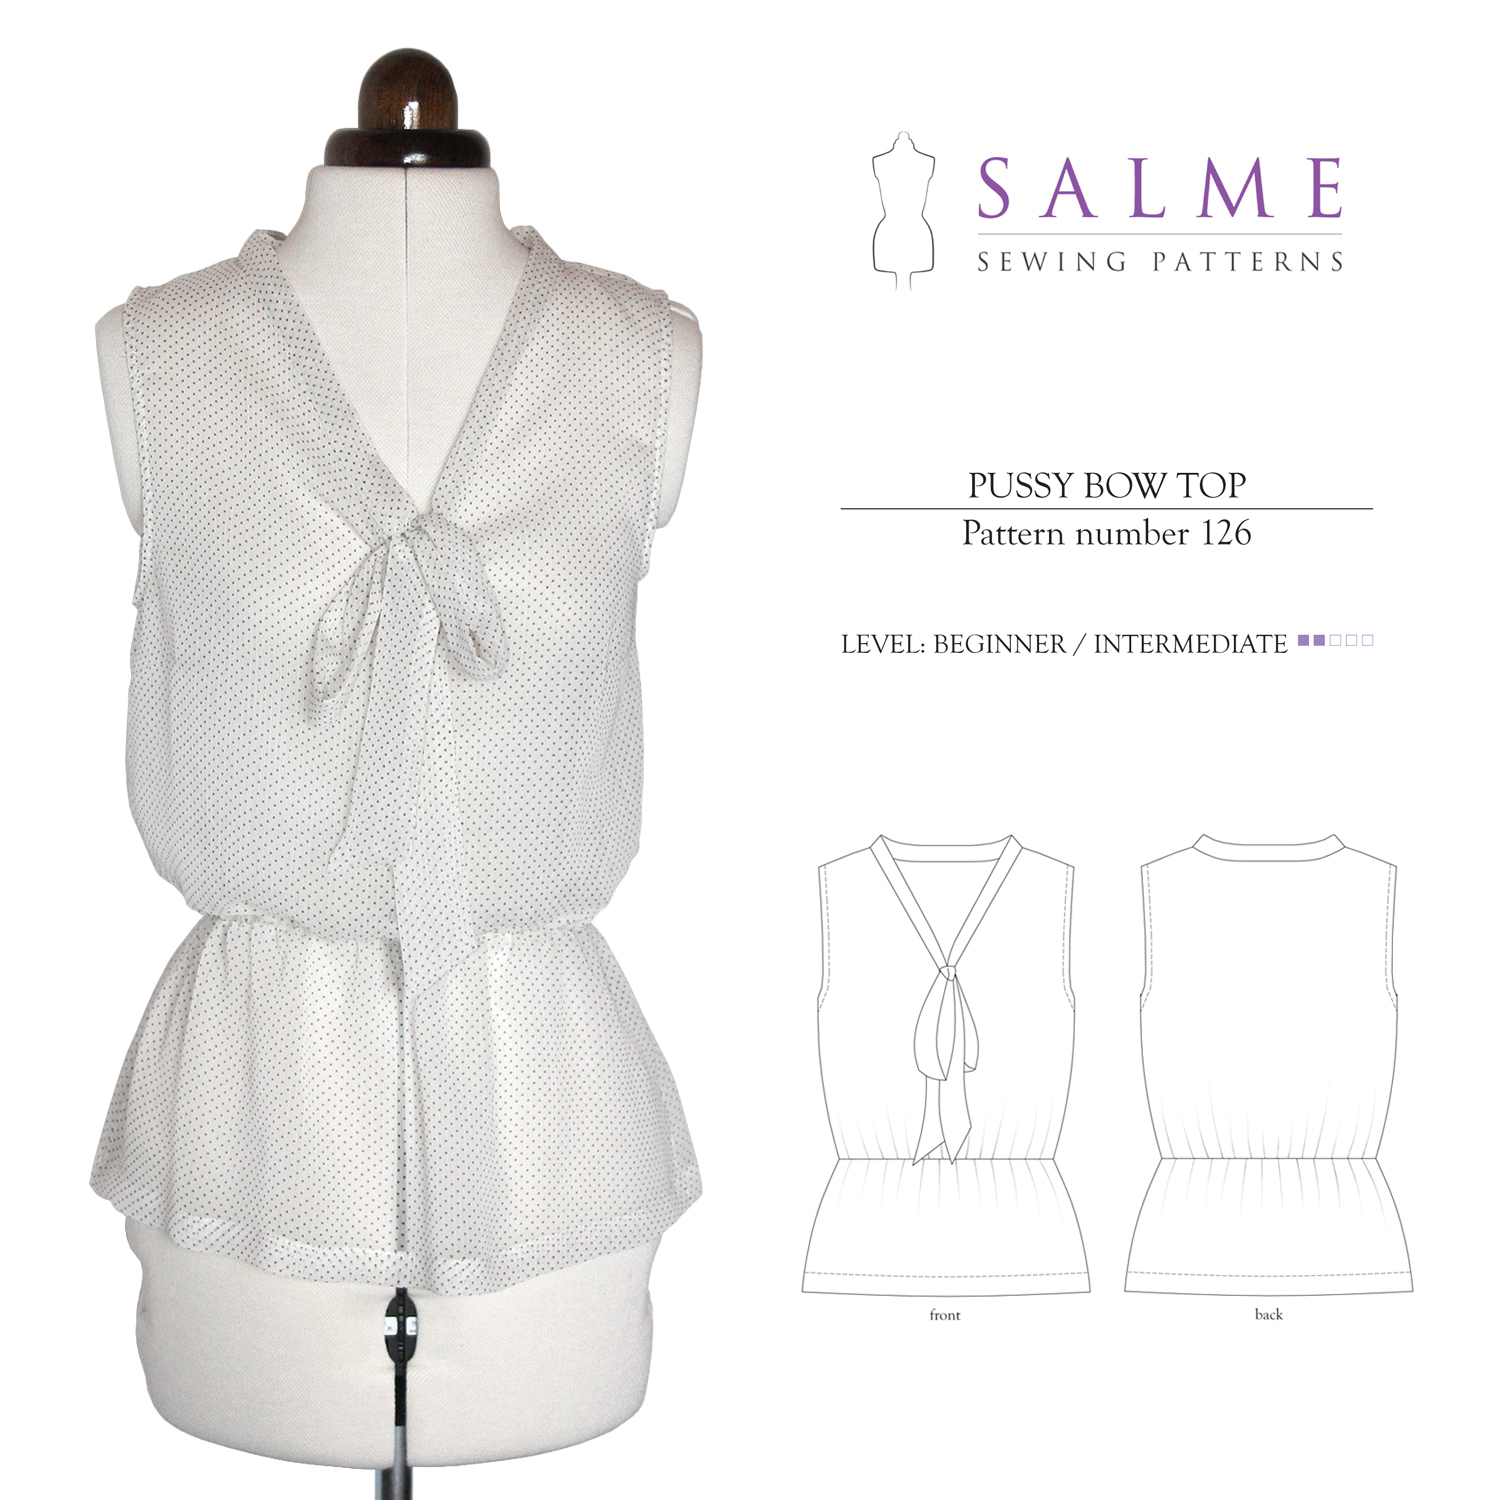 Salme Sewing Patterns Pussy Bow Blouse Downloadable Pattern 126